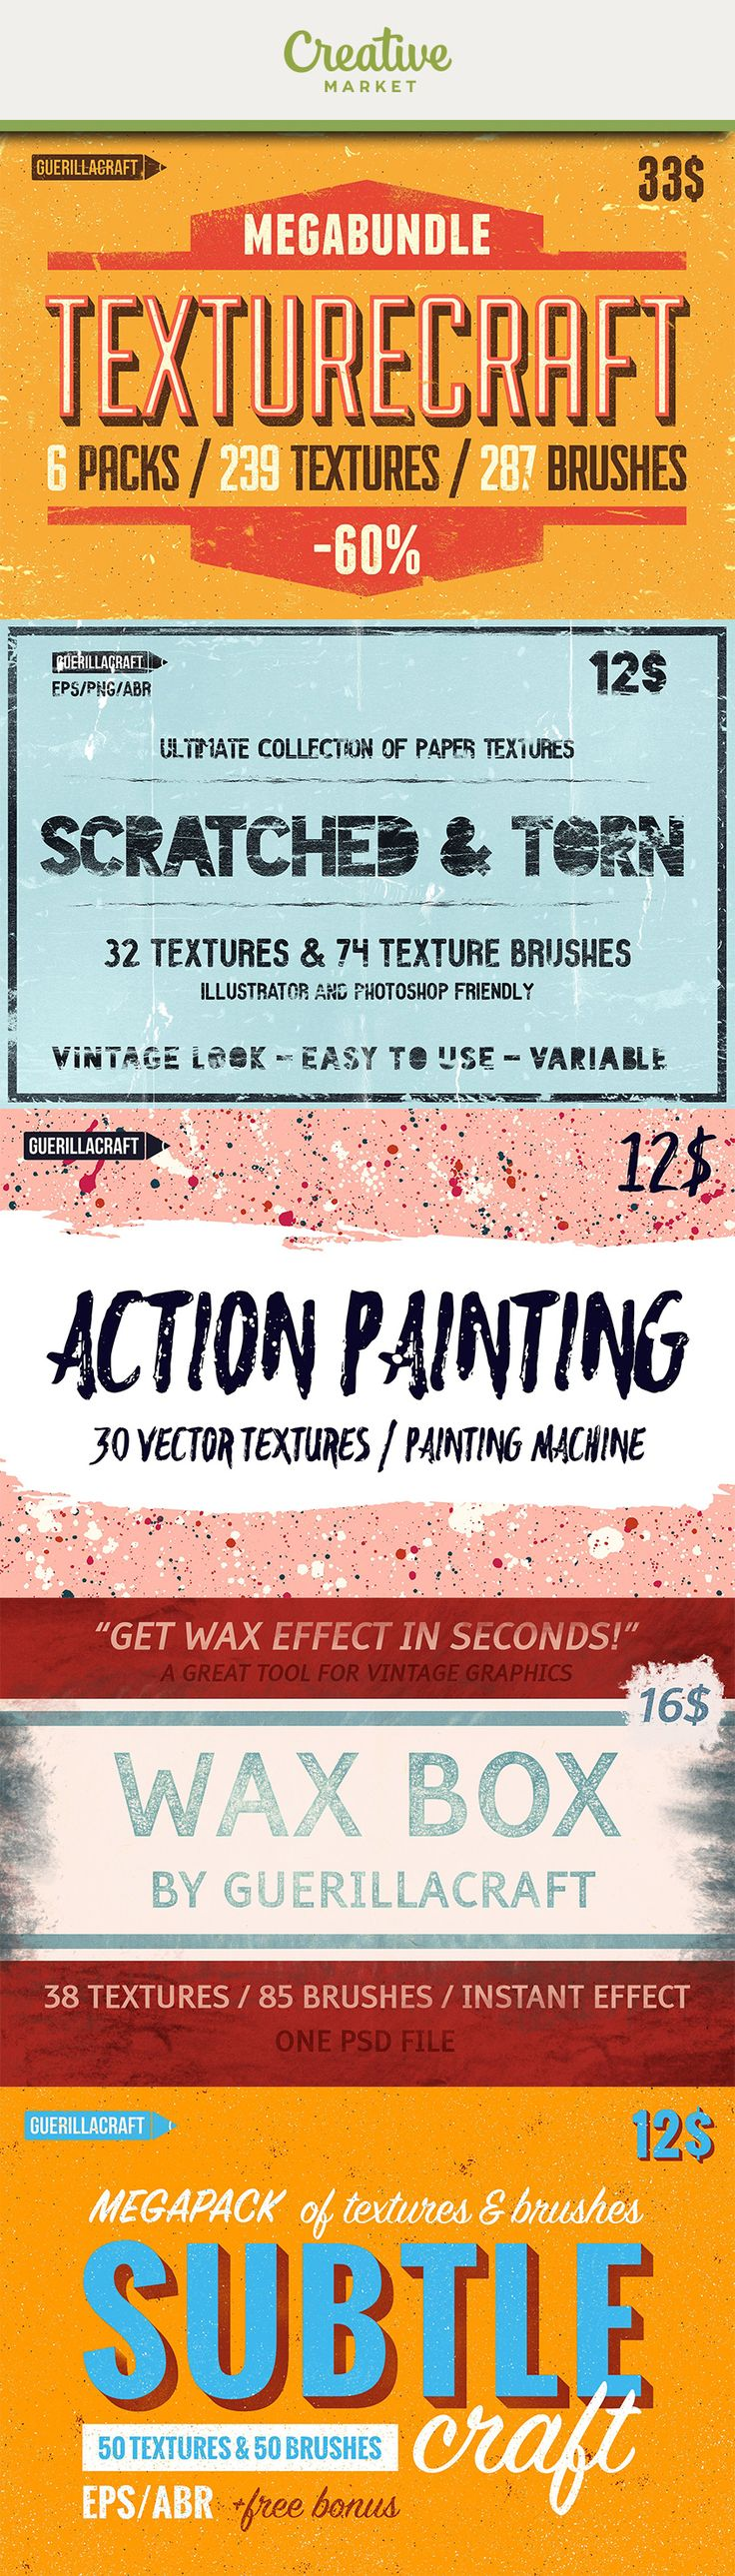 """Ad: TEXTURECRAFT is a great opportunity to update your textures library! It contains6 """"textures"""" products by Guerillacraft in value of 76$ and you can get it all only for33$NOW! 6 products / 239 textures / 287 texture brushes for Adobe Photoshop. Transparent PNG textures and EPS vector textures included. Now on Creative Market"""